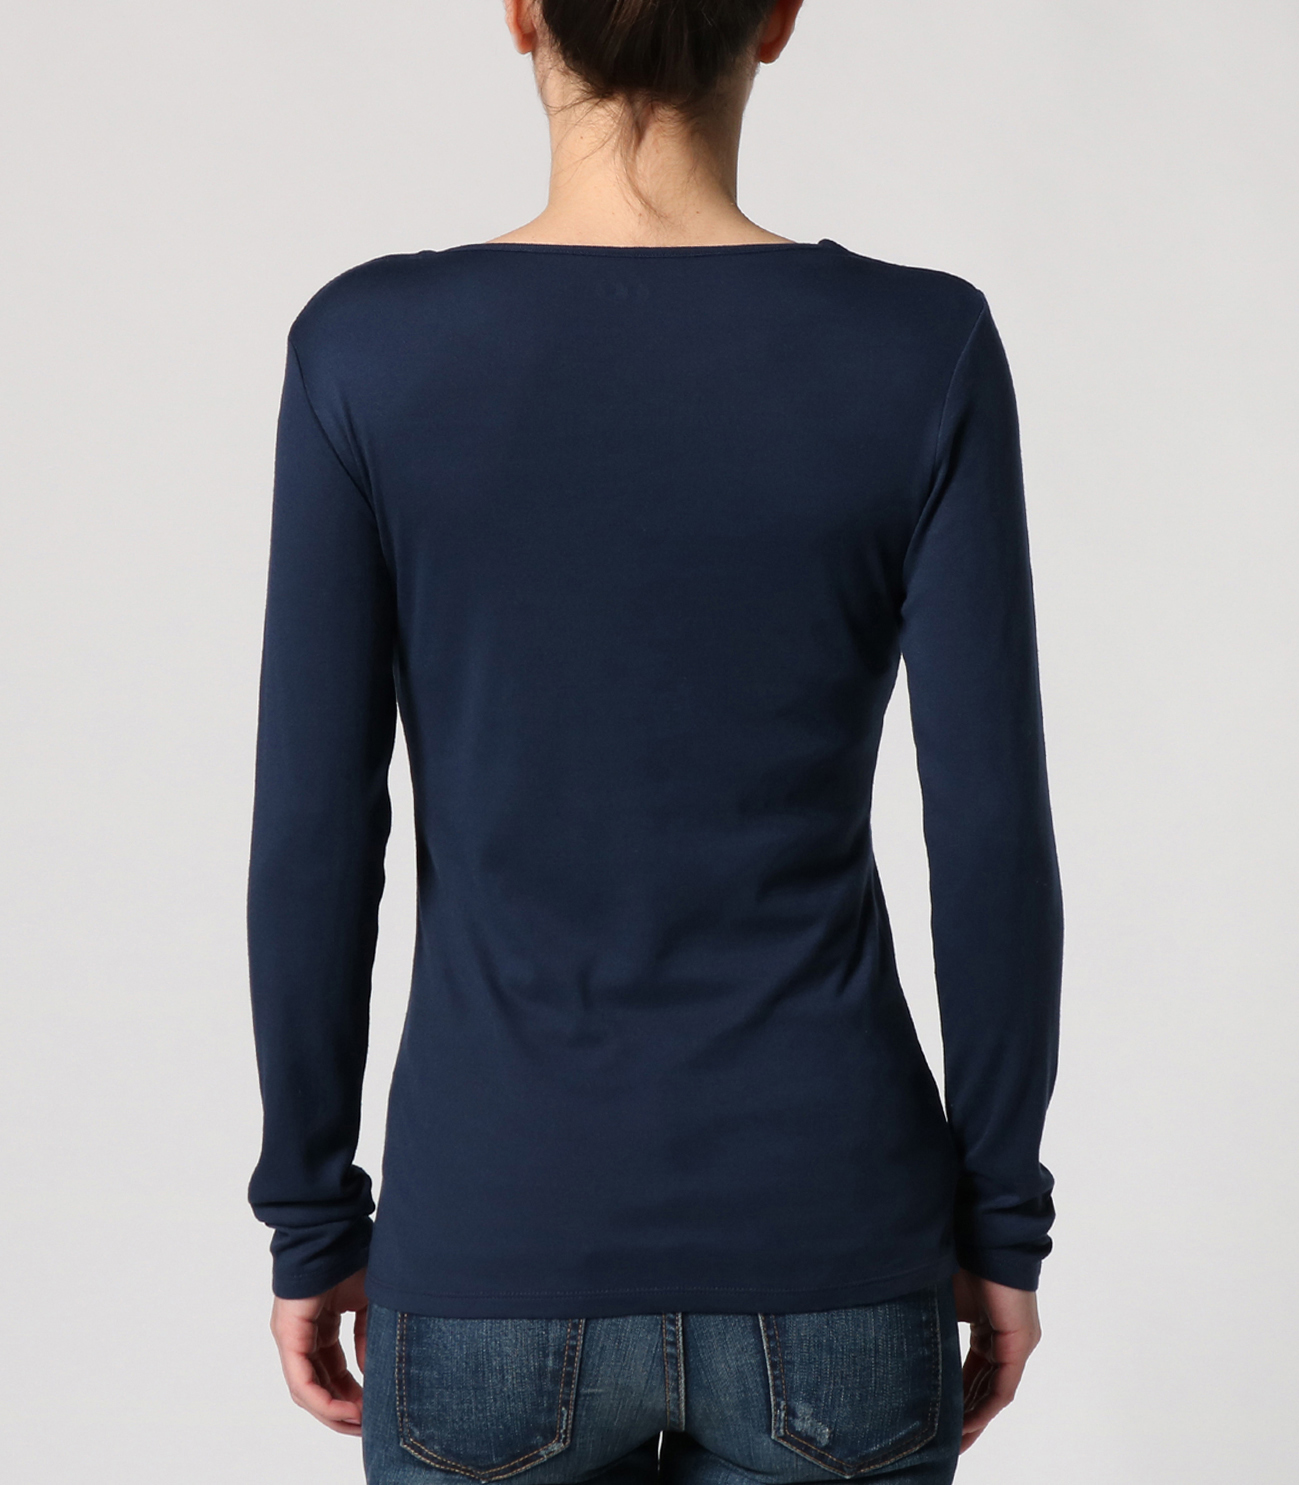 sustinable jersey l/s crewneck pullover 詳細画像 navy 4